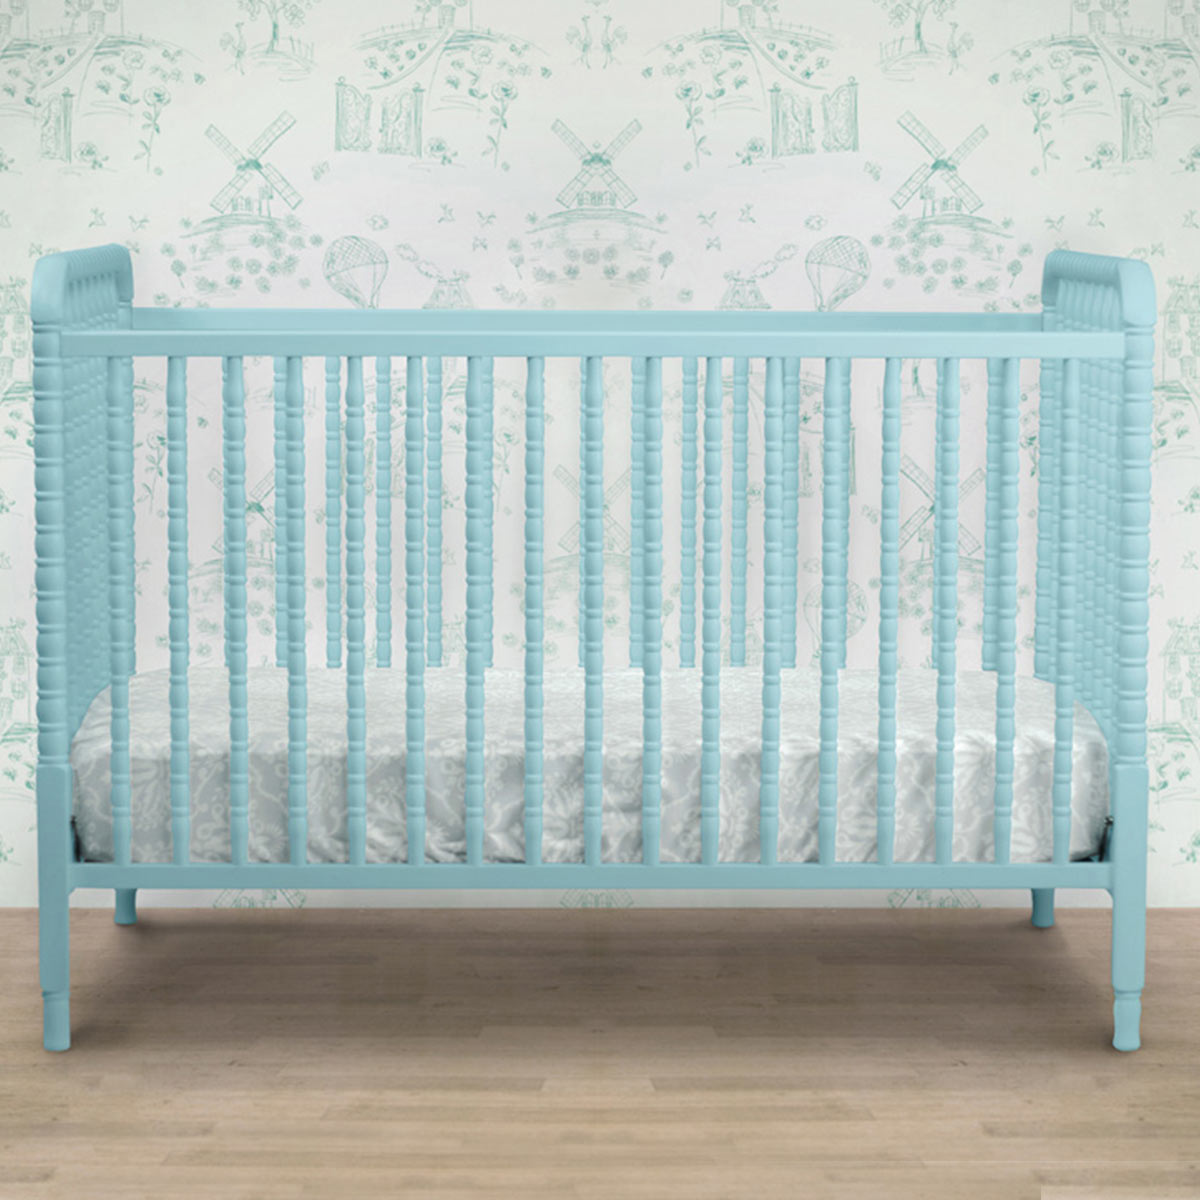 simple blue baby crib from simplybabyfurniture